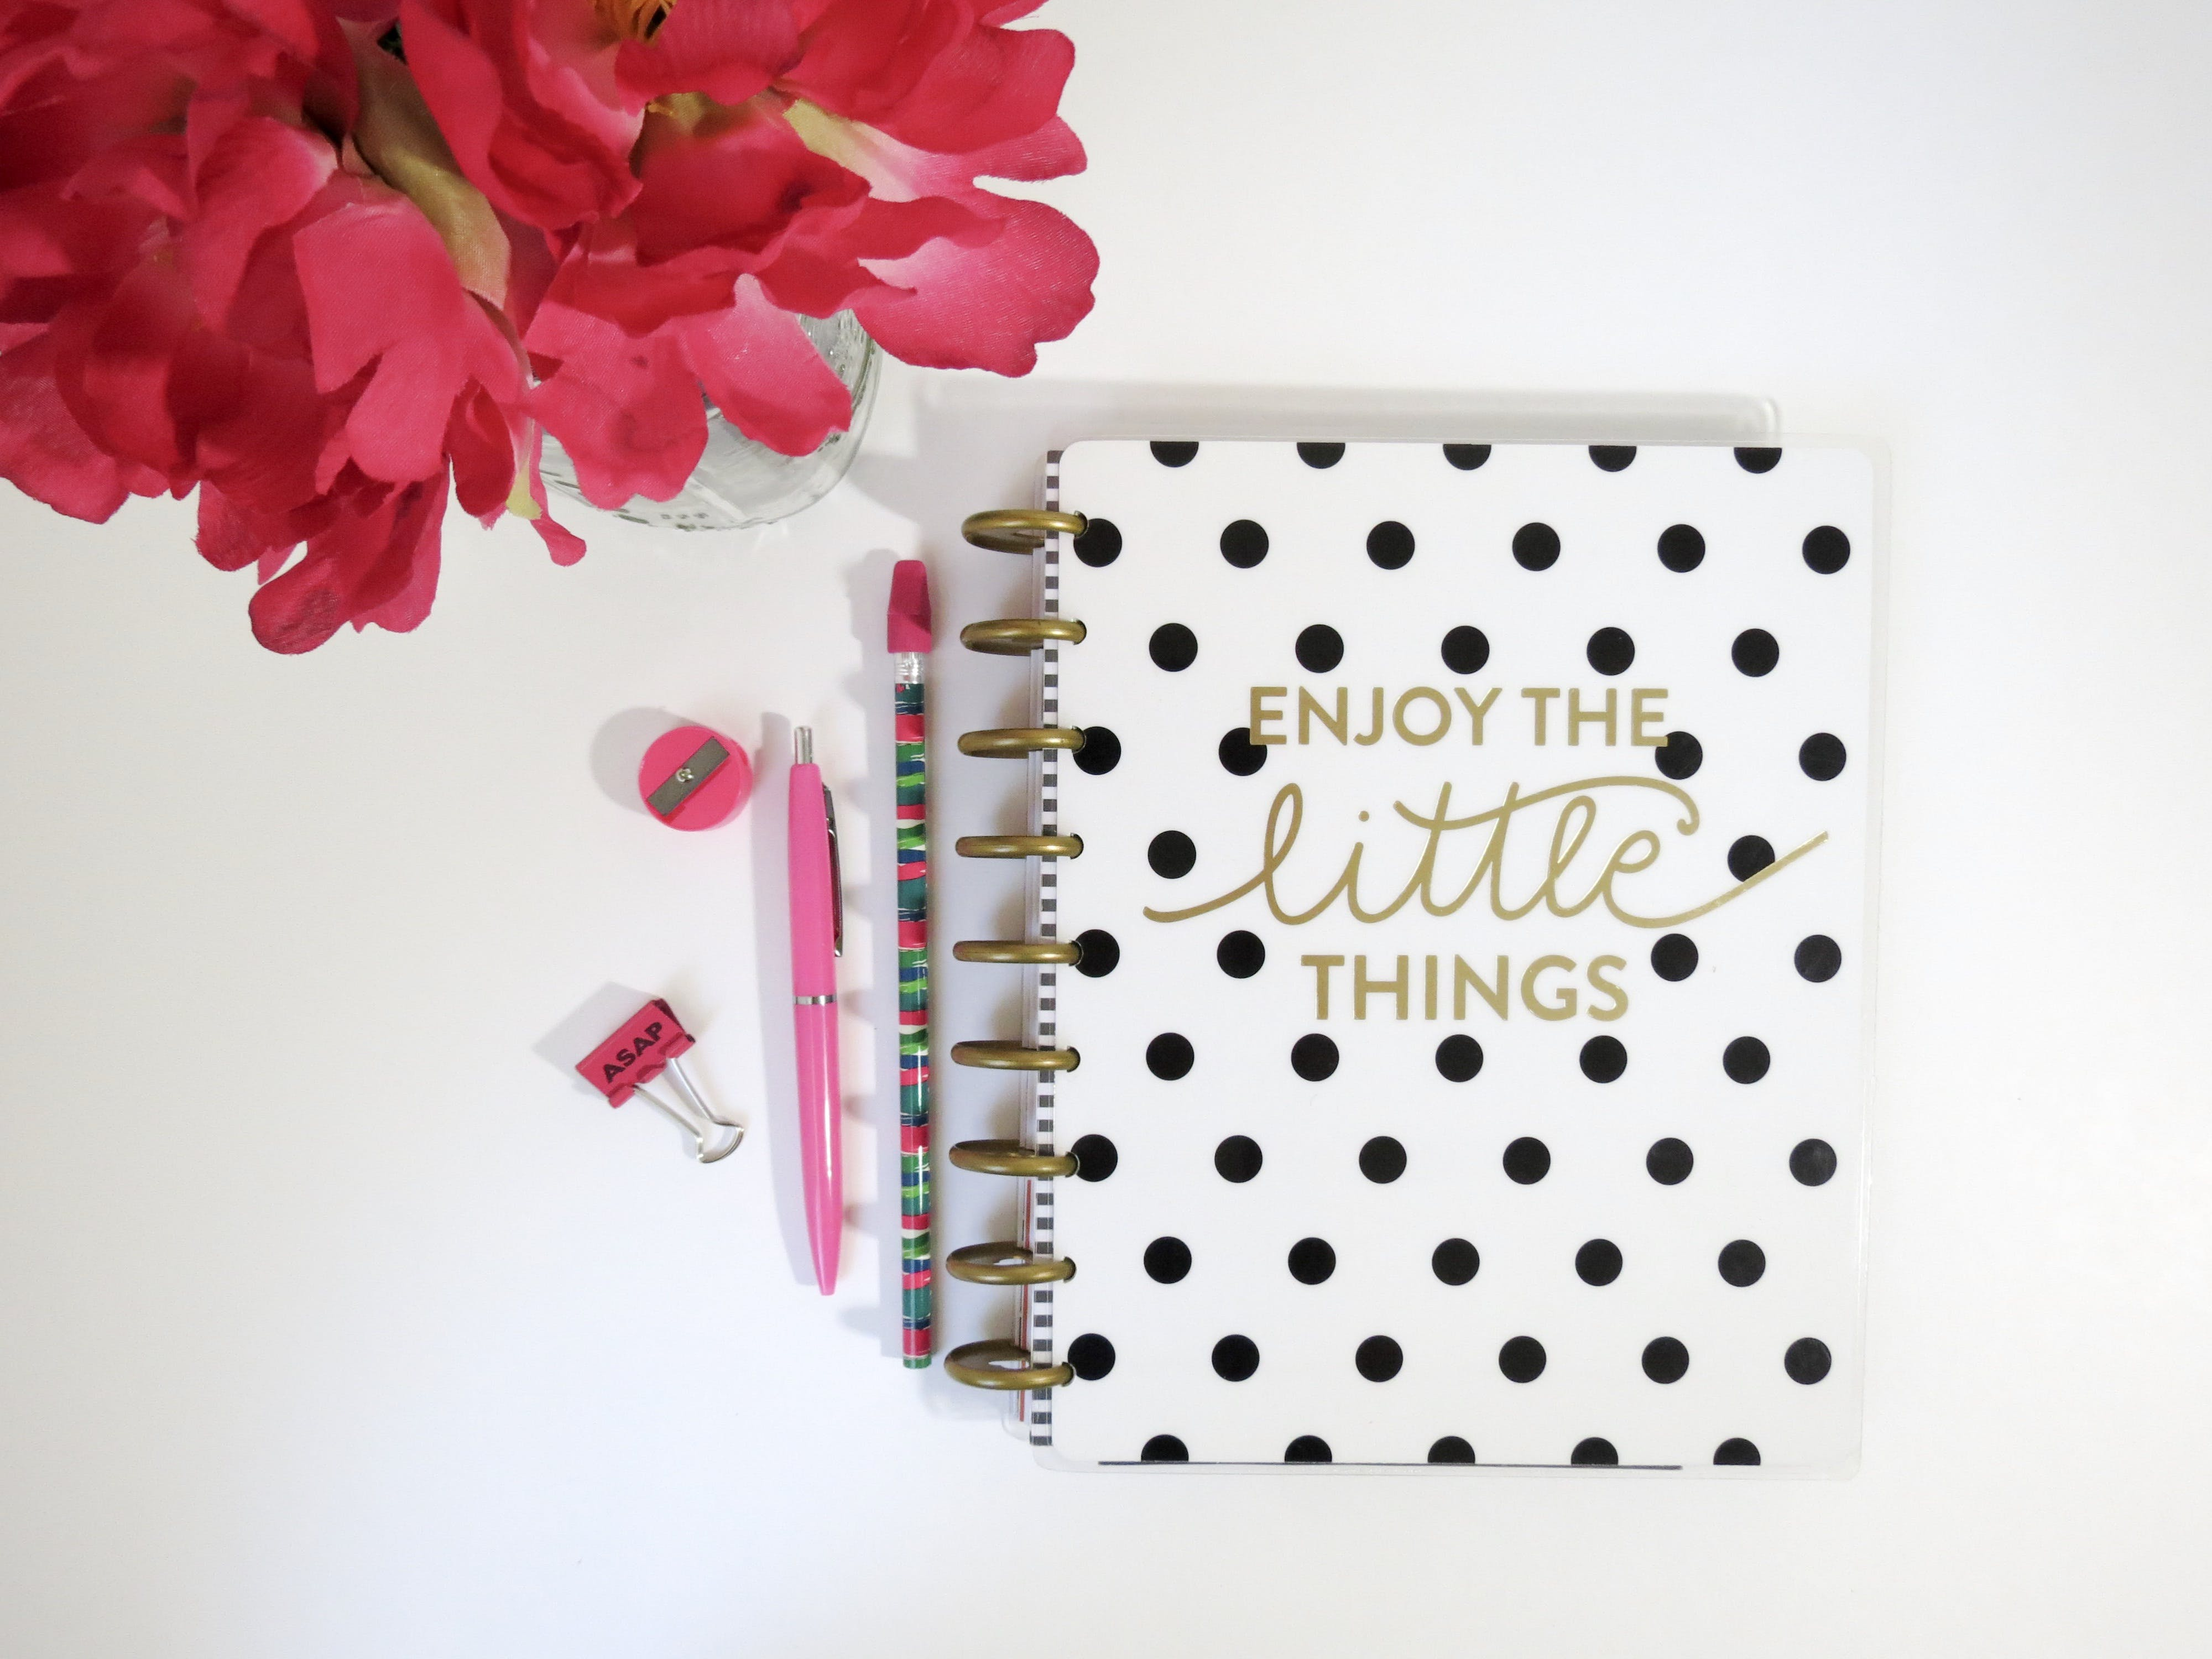 Free stock photo of love, flowers, notebook, pen